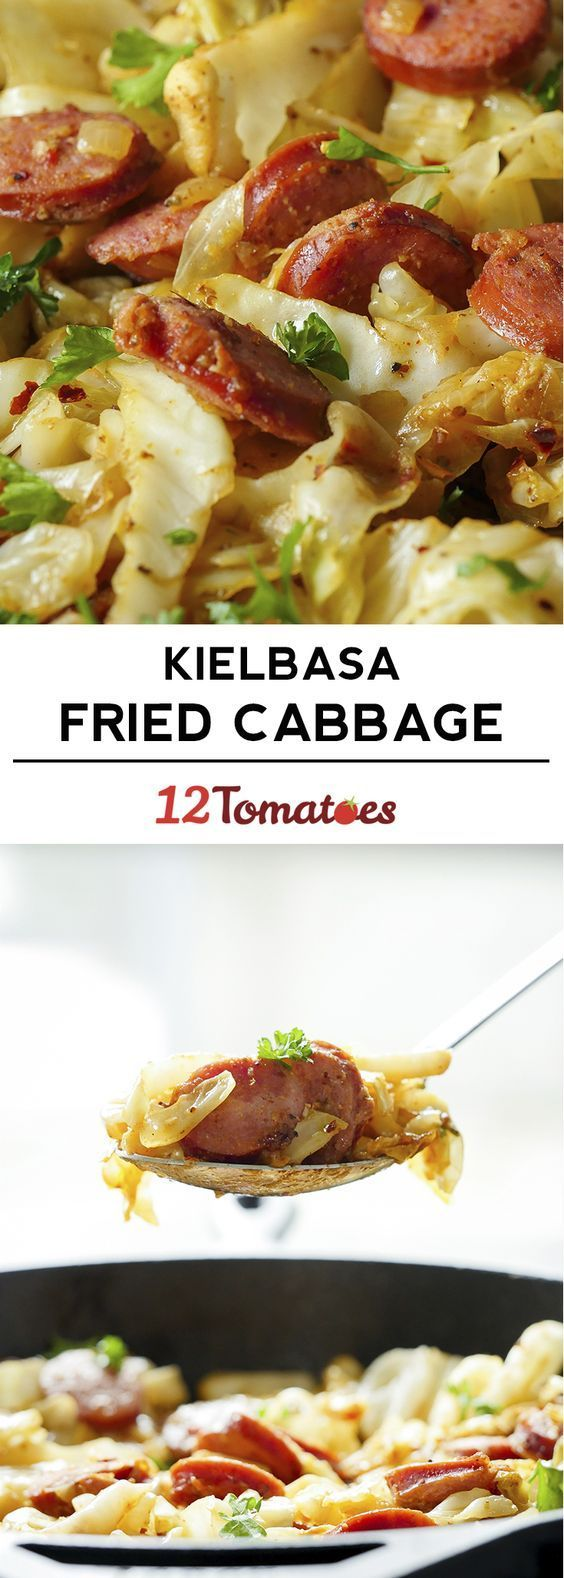 Cabbage & Kielbasa Skillet. Easy and my husband liked it. I panicked about the liquid level and added chicken broth - which wasn't needed and diluted the flavor, so I had to make adjustments; won't make that mistake again.